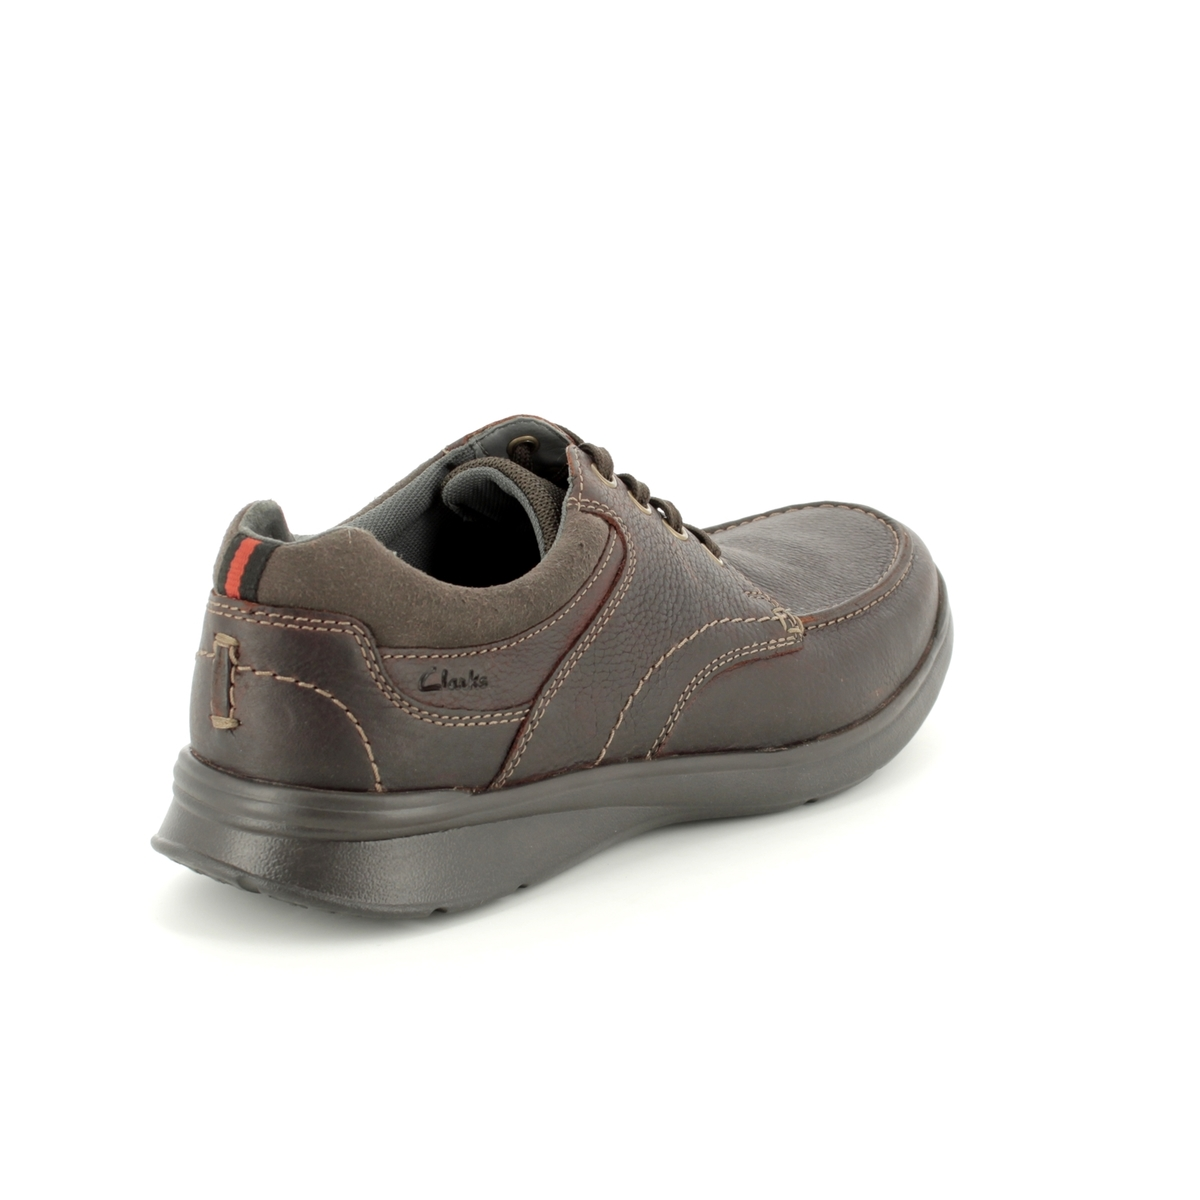 4bfeb2c2ca30 Clarks Casual Shoes - Brown - 1980 38H COTRELL EDGE